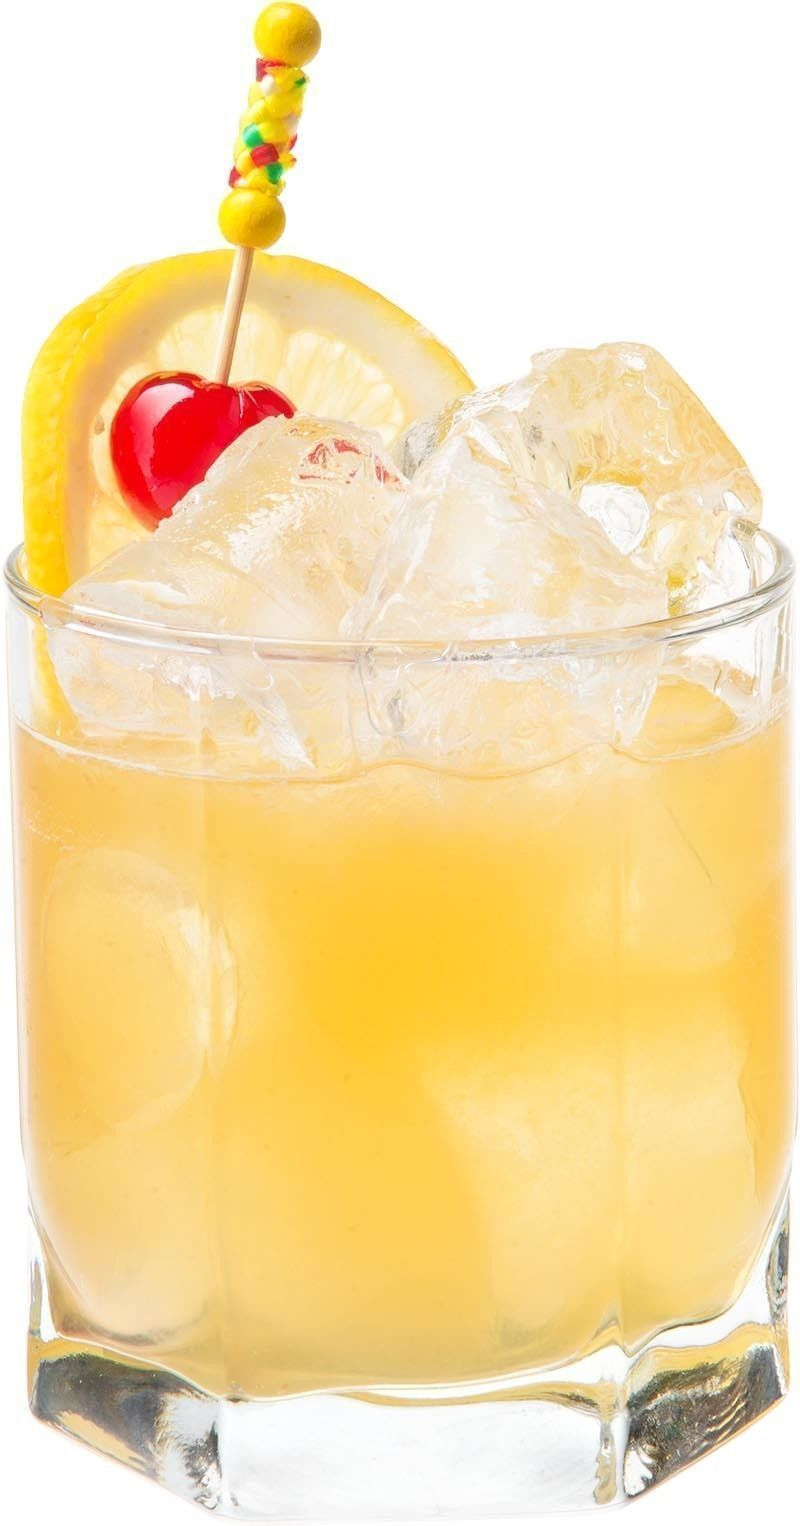 How to Make the Brandy Sour